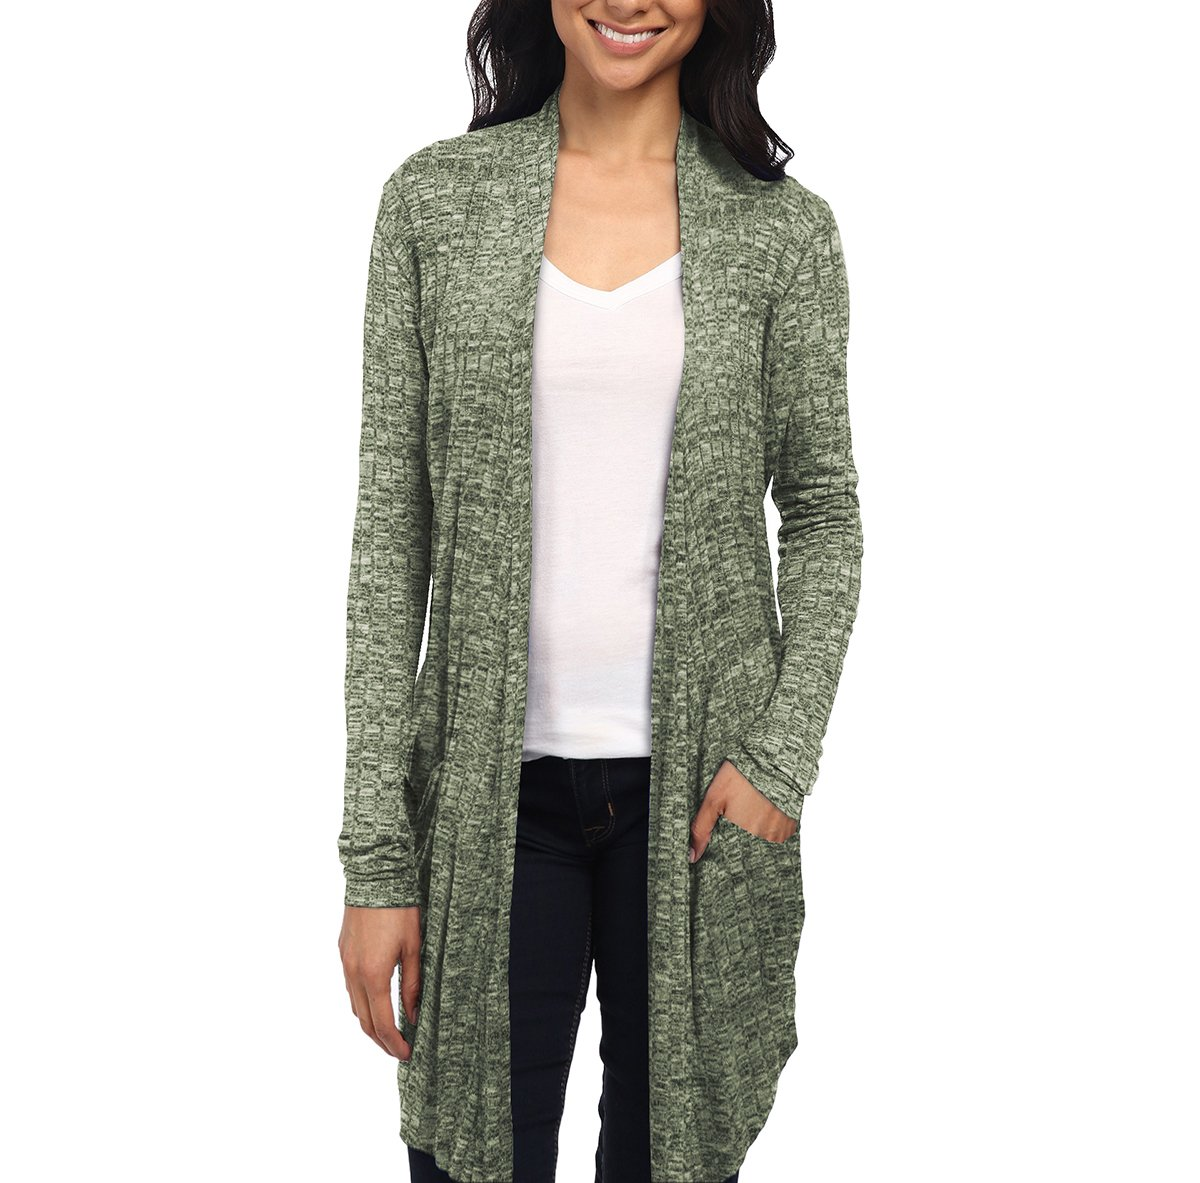 HyBrid & Company Womens Casual Open Front Drape Cardigan KSKW31127X Olive 2X